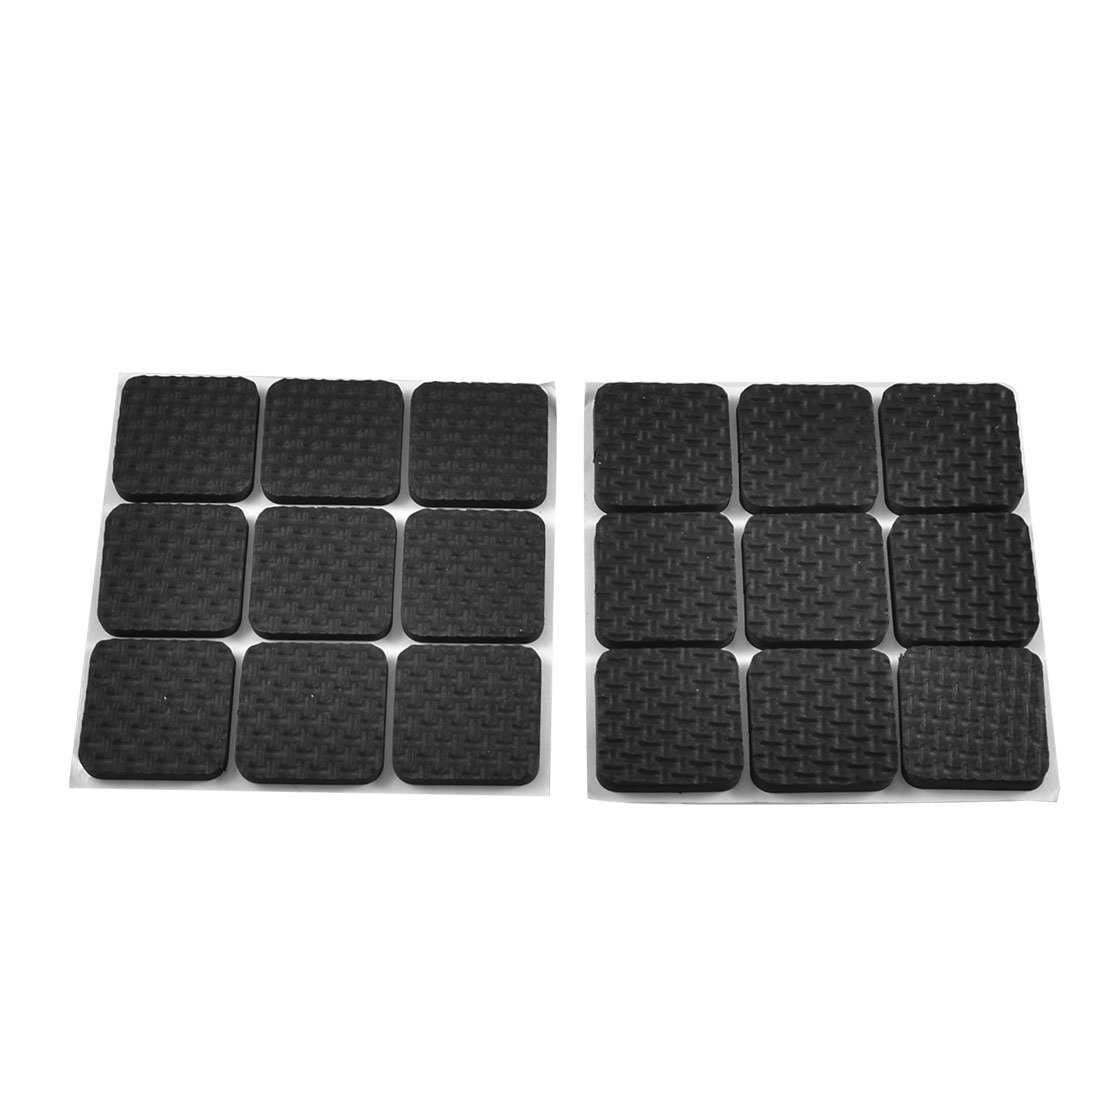 Chair Feet Pads 18 Pcs Square Shaped Black Adhesive Protection Pad For